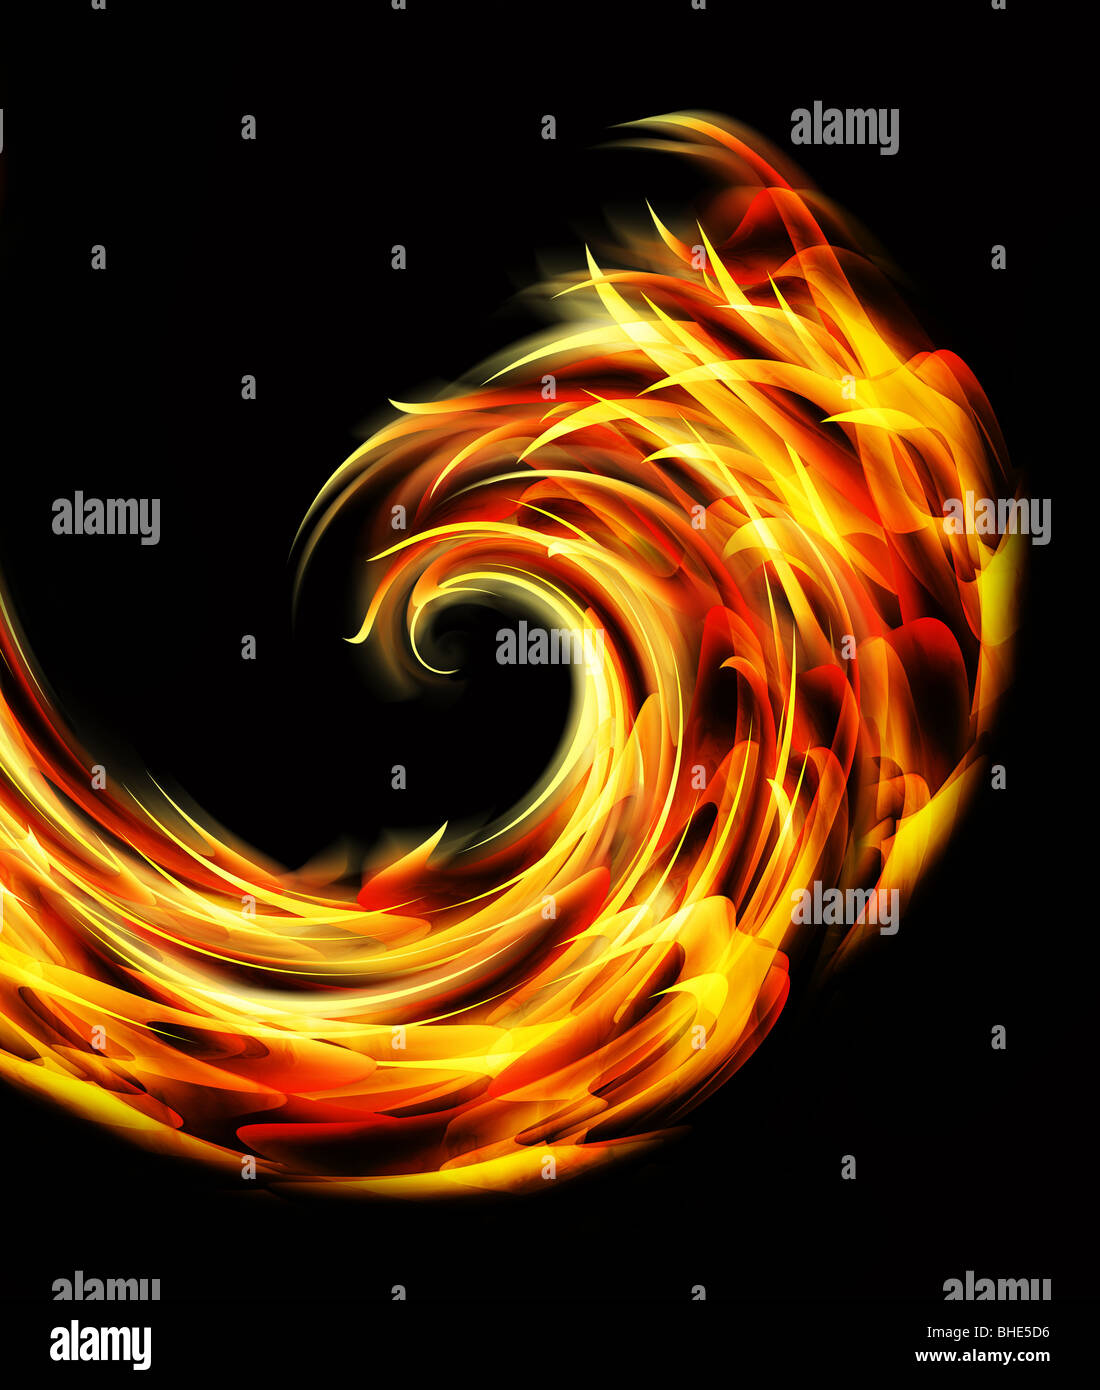 Abstract graphic feu et flammes illustration Photo Stock